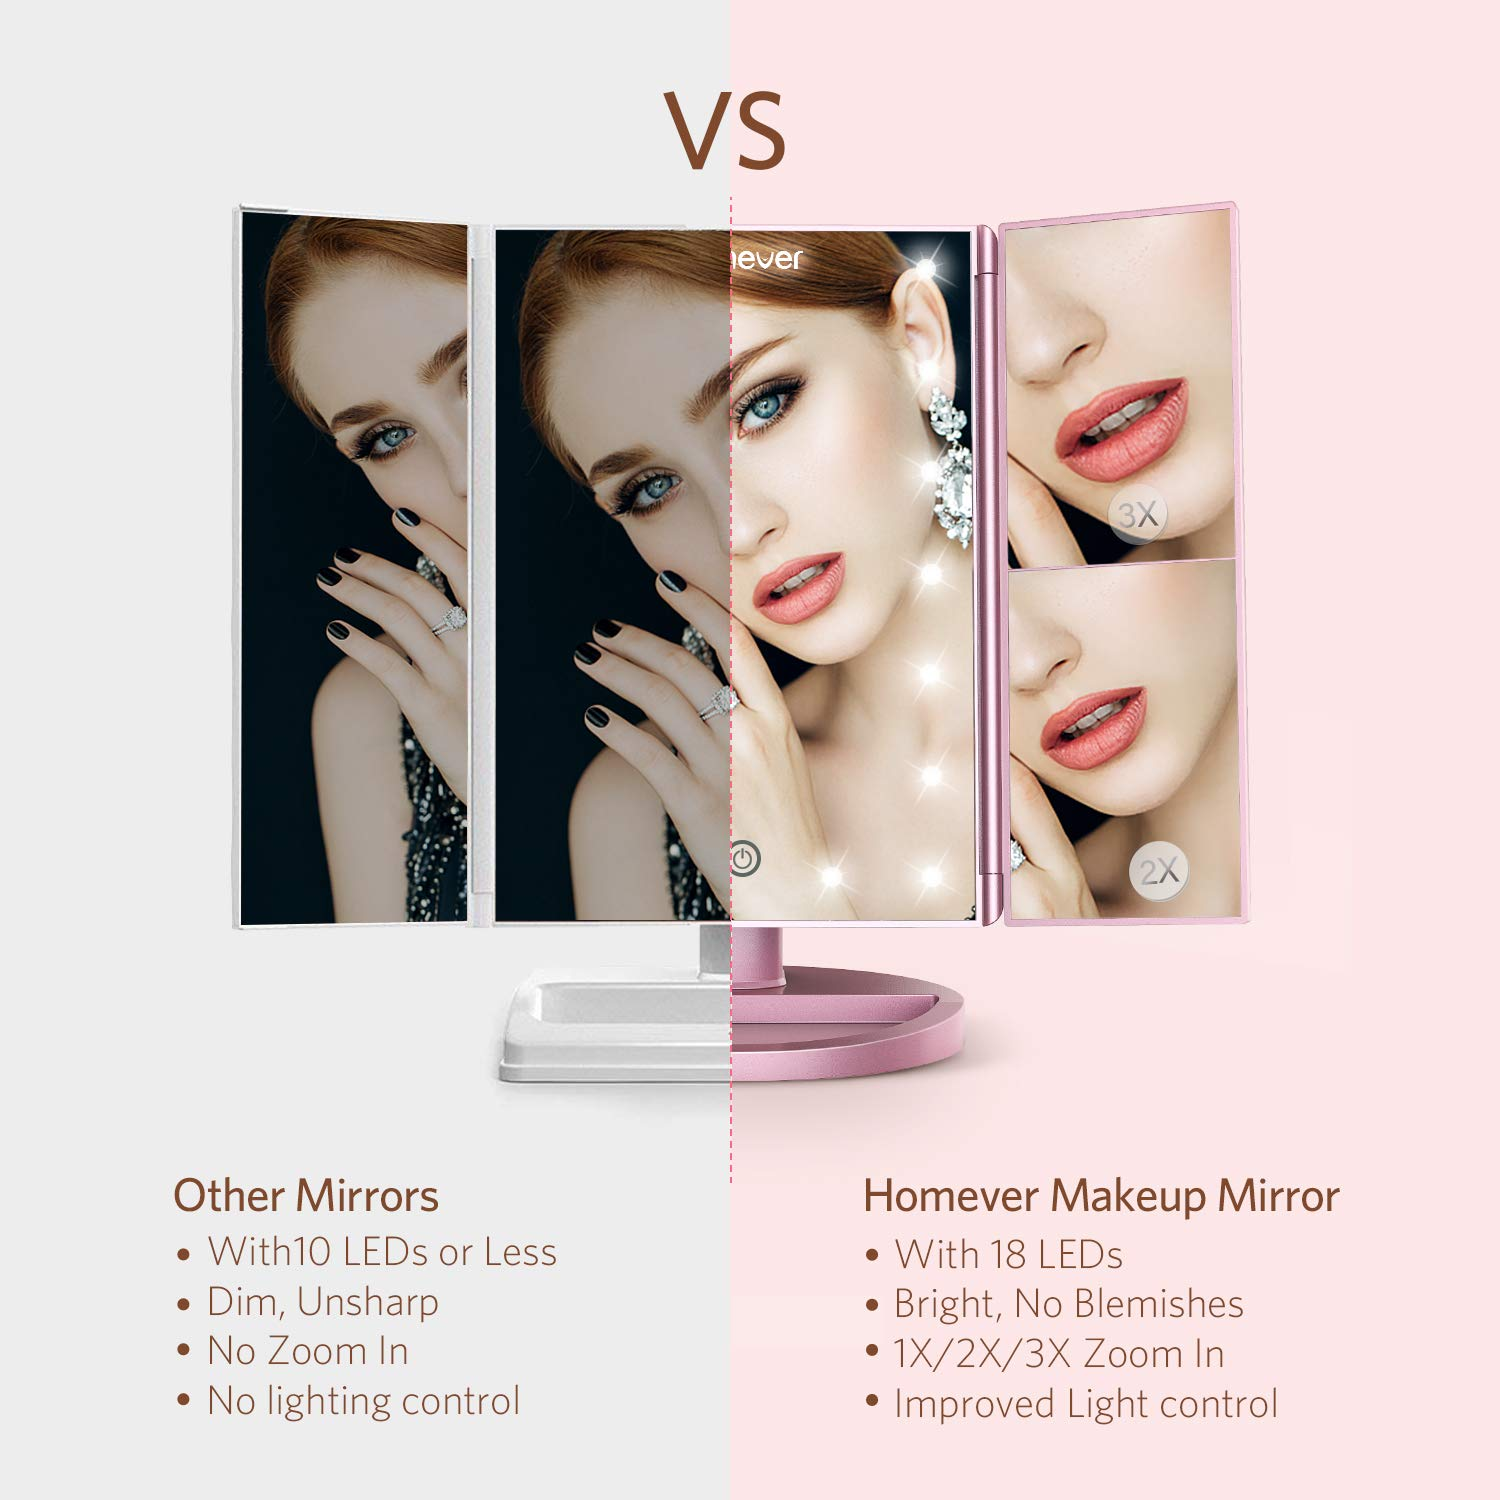 Homever Makeup Vanity Mirror with 21 LED Lights, 3X/2X Magnifying Lighted Makeup Mirror with Touch-Screen, 180° Free Rotation, Dual Power Supply, Upgrade in 2018 (Rose gold) by Homever (Image #3)